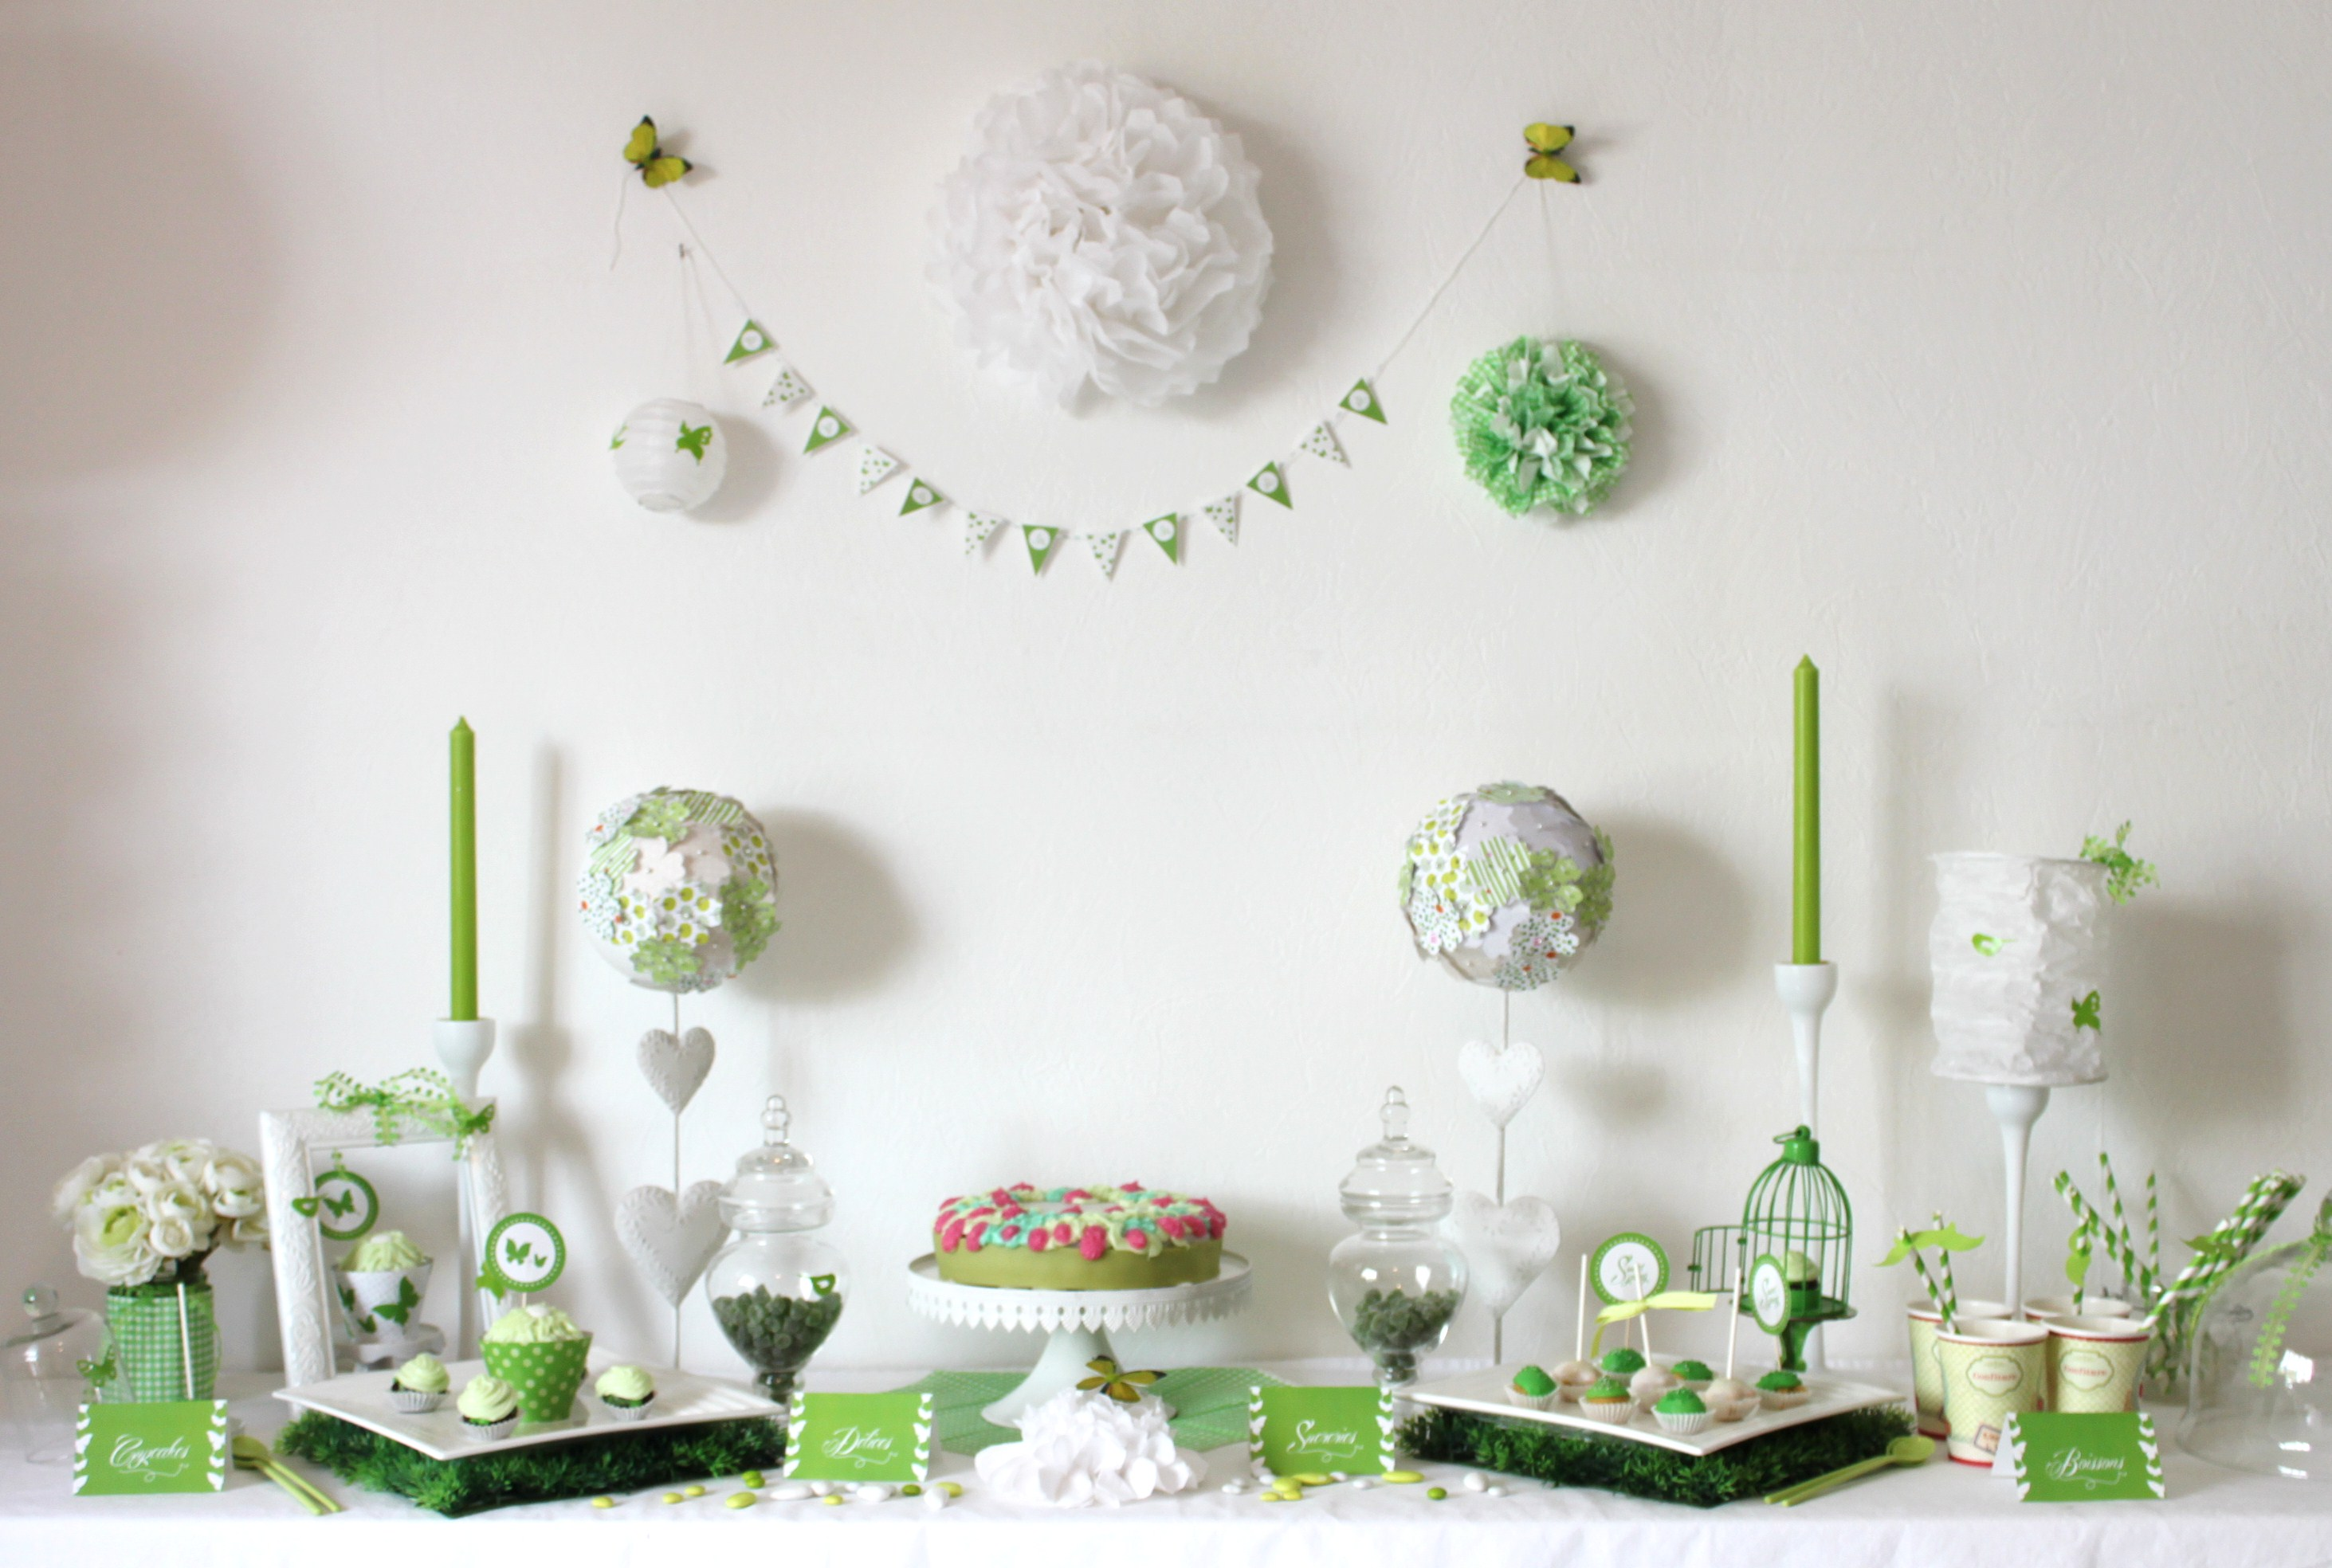 sweet table granny - la fabricamania